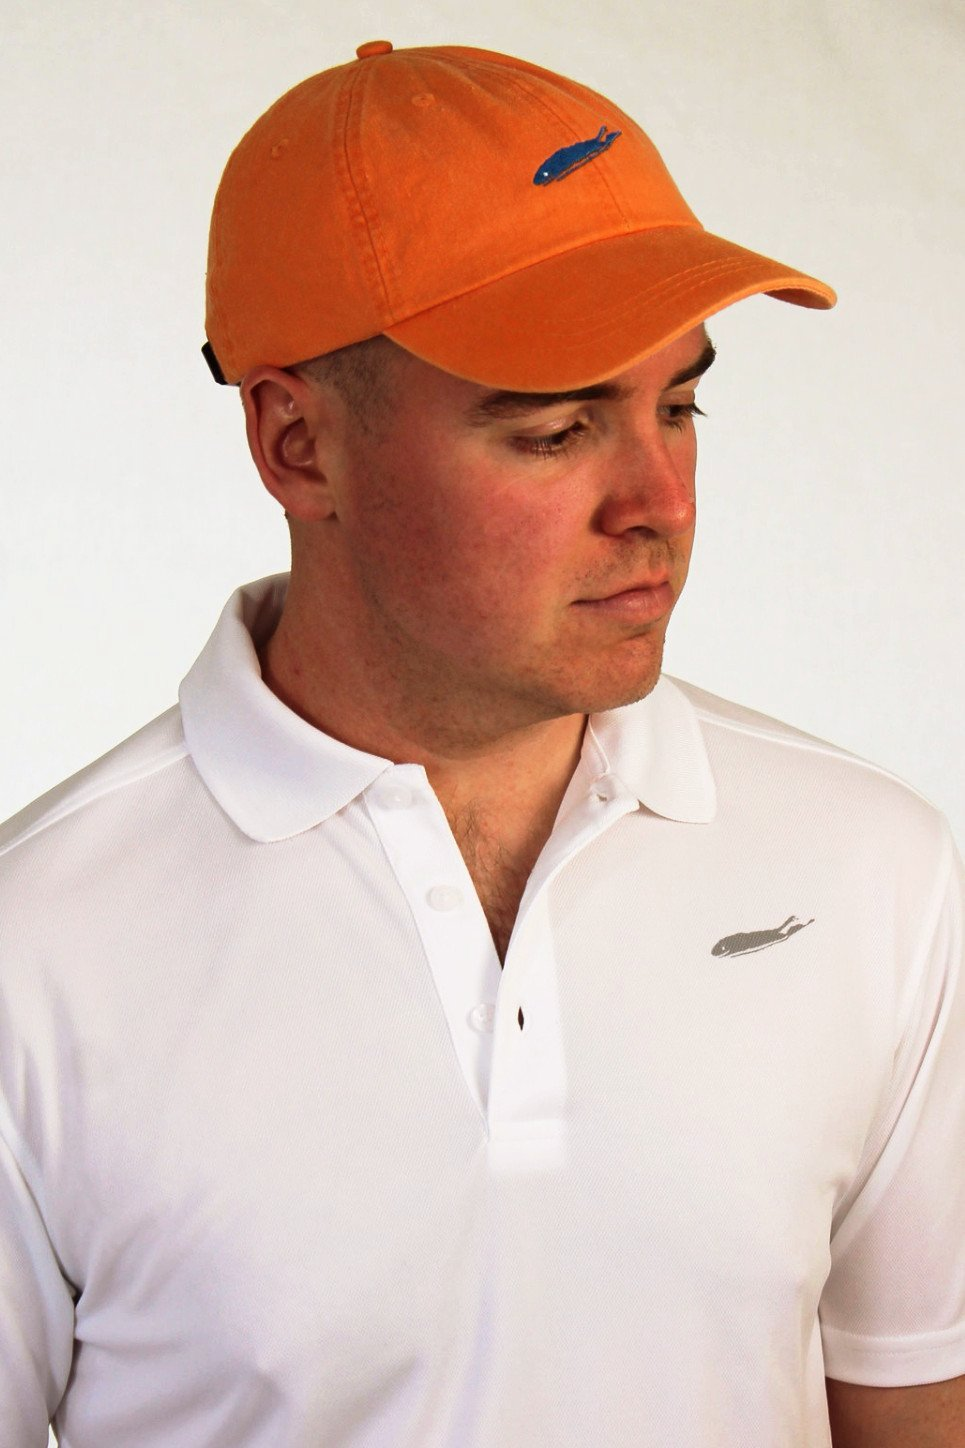 Hats: Classic Cap - Tangerine - Love The Island